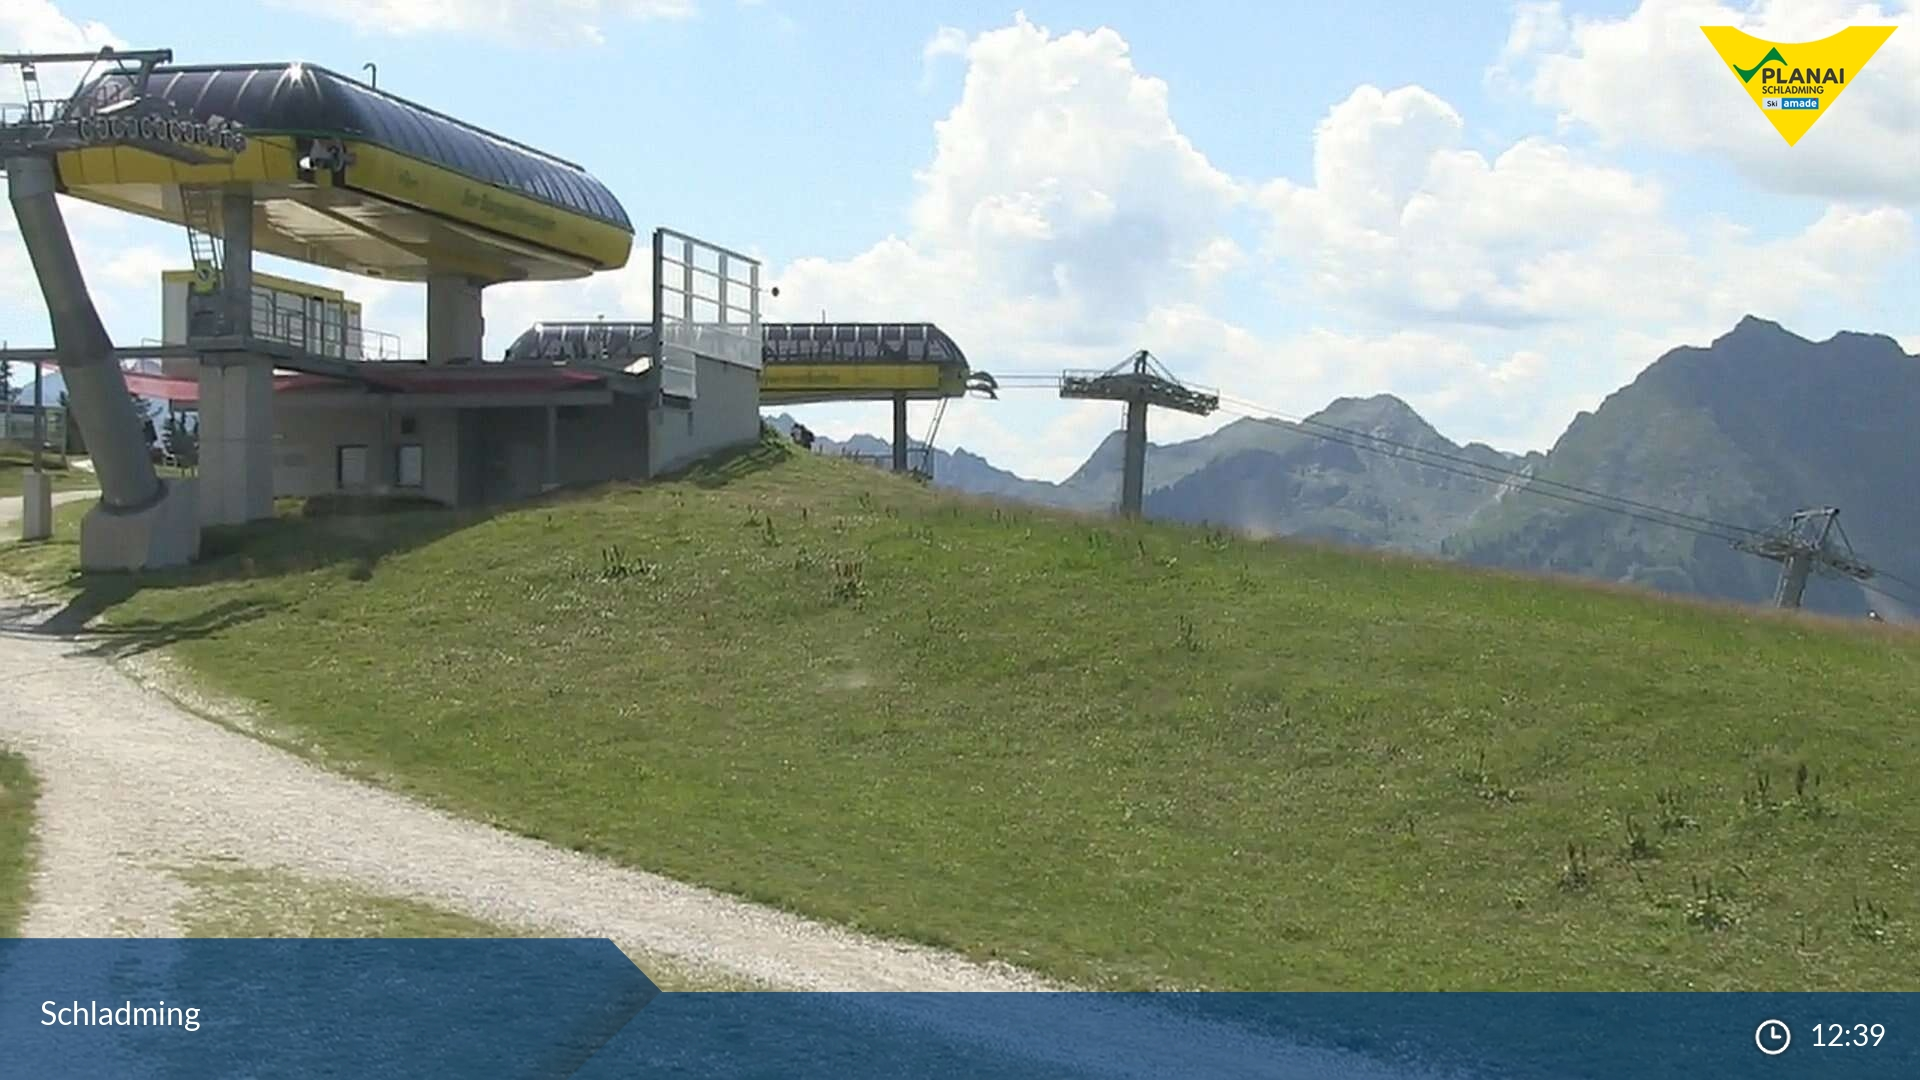 Schladming webcam - Planai ski station